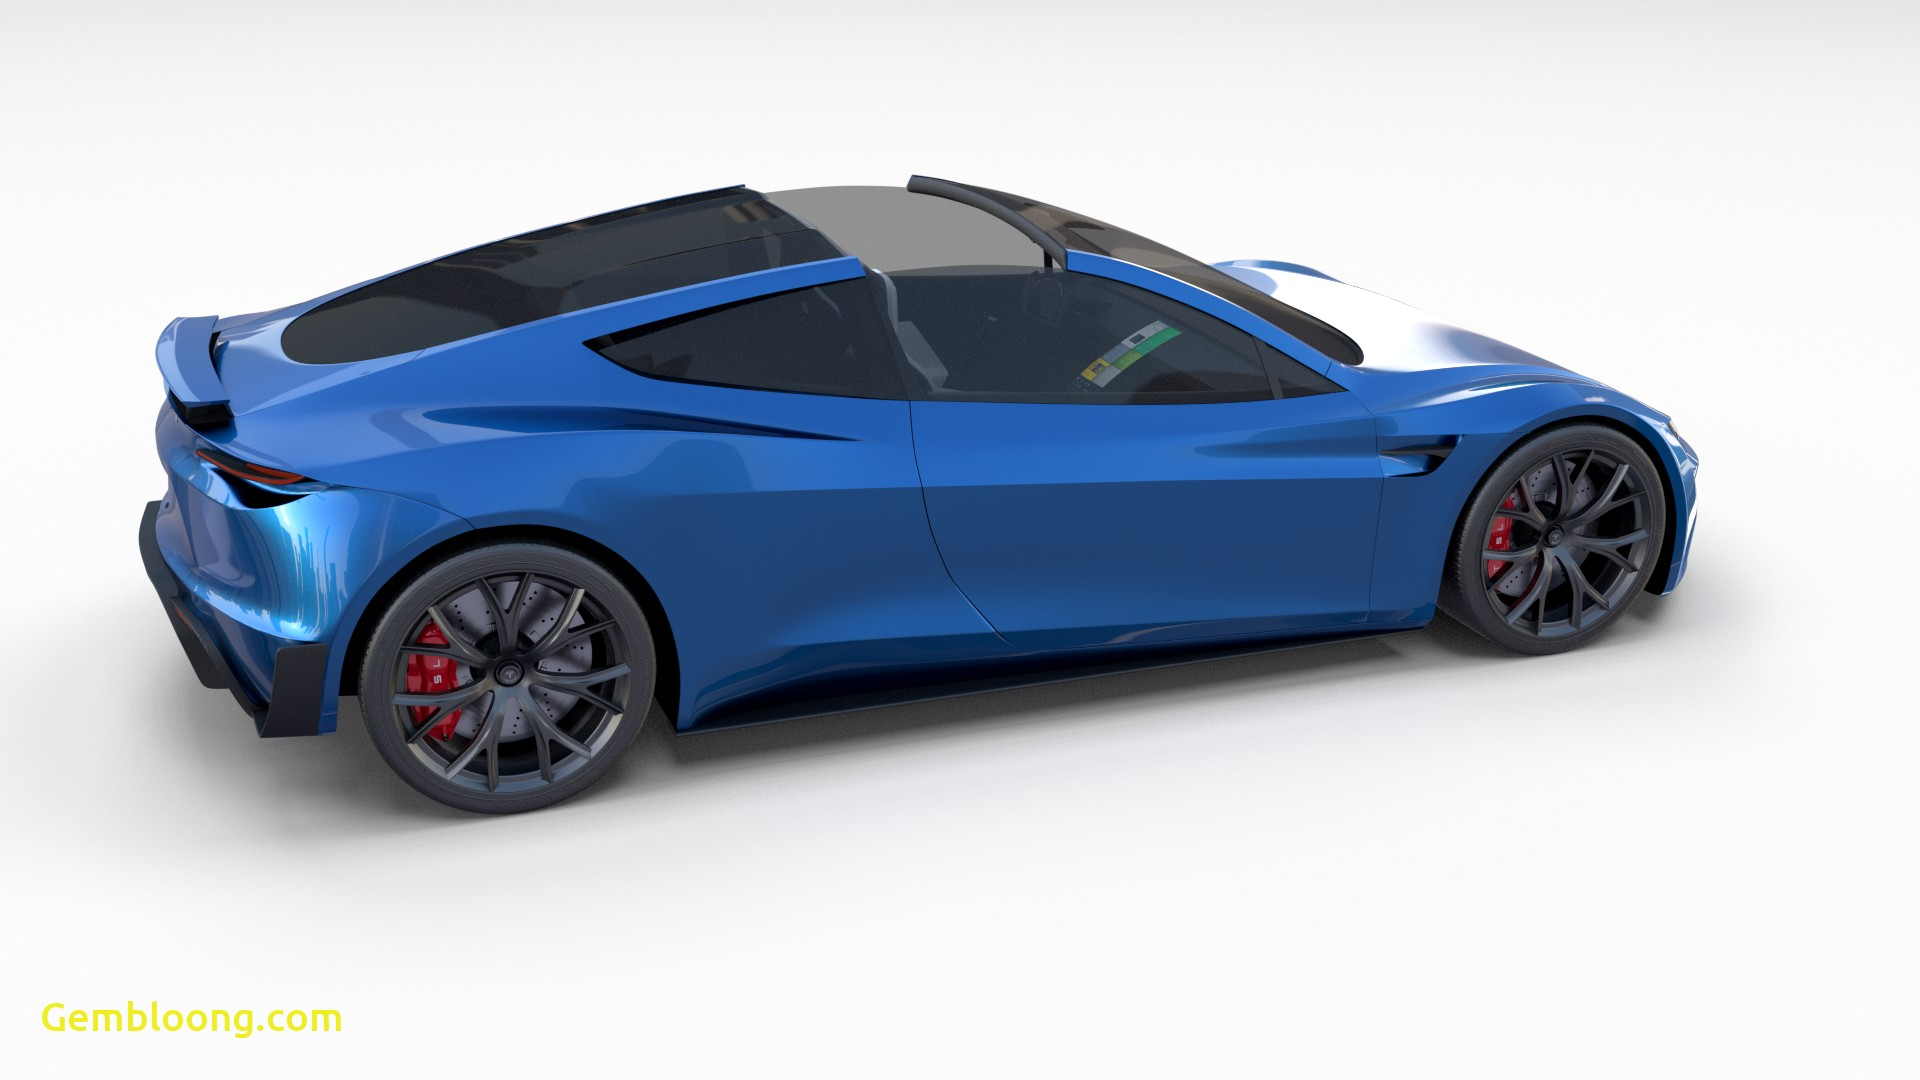 Tesla 2020 Inspirational Tesla Roadster 2020 Electric Blue with Interior and Chassis